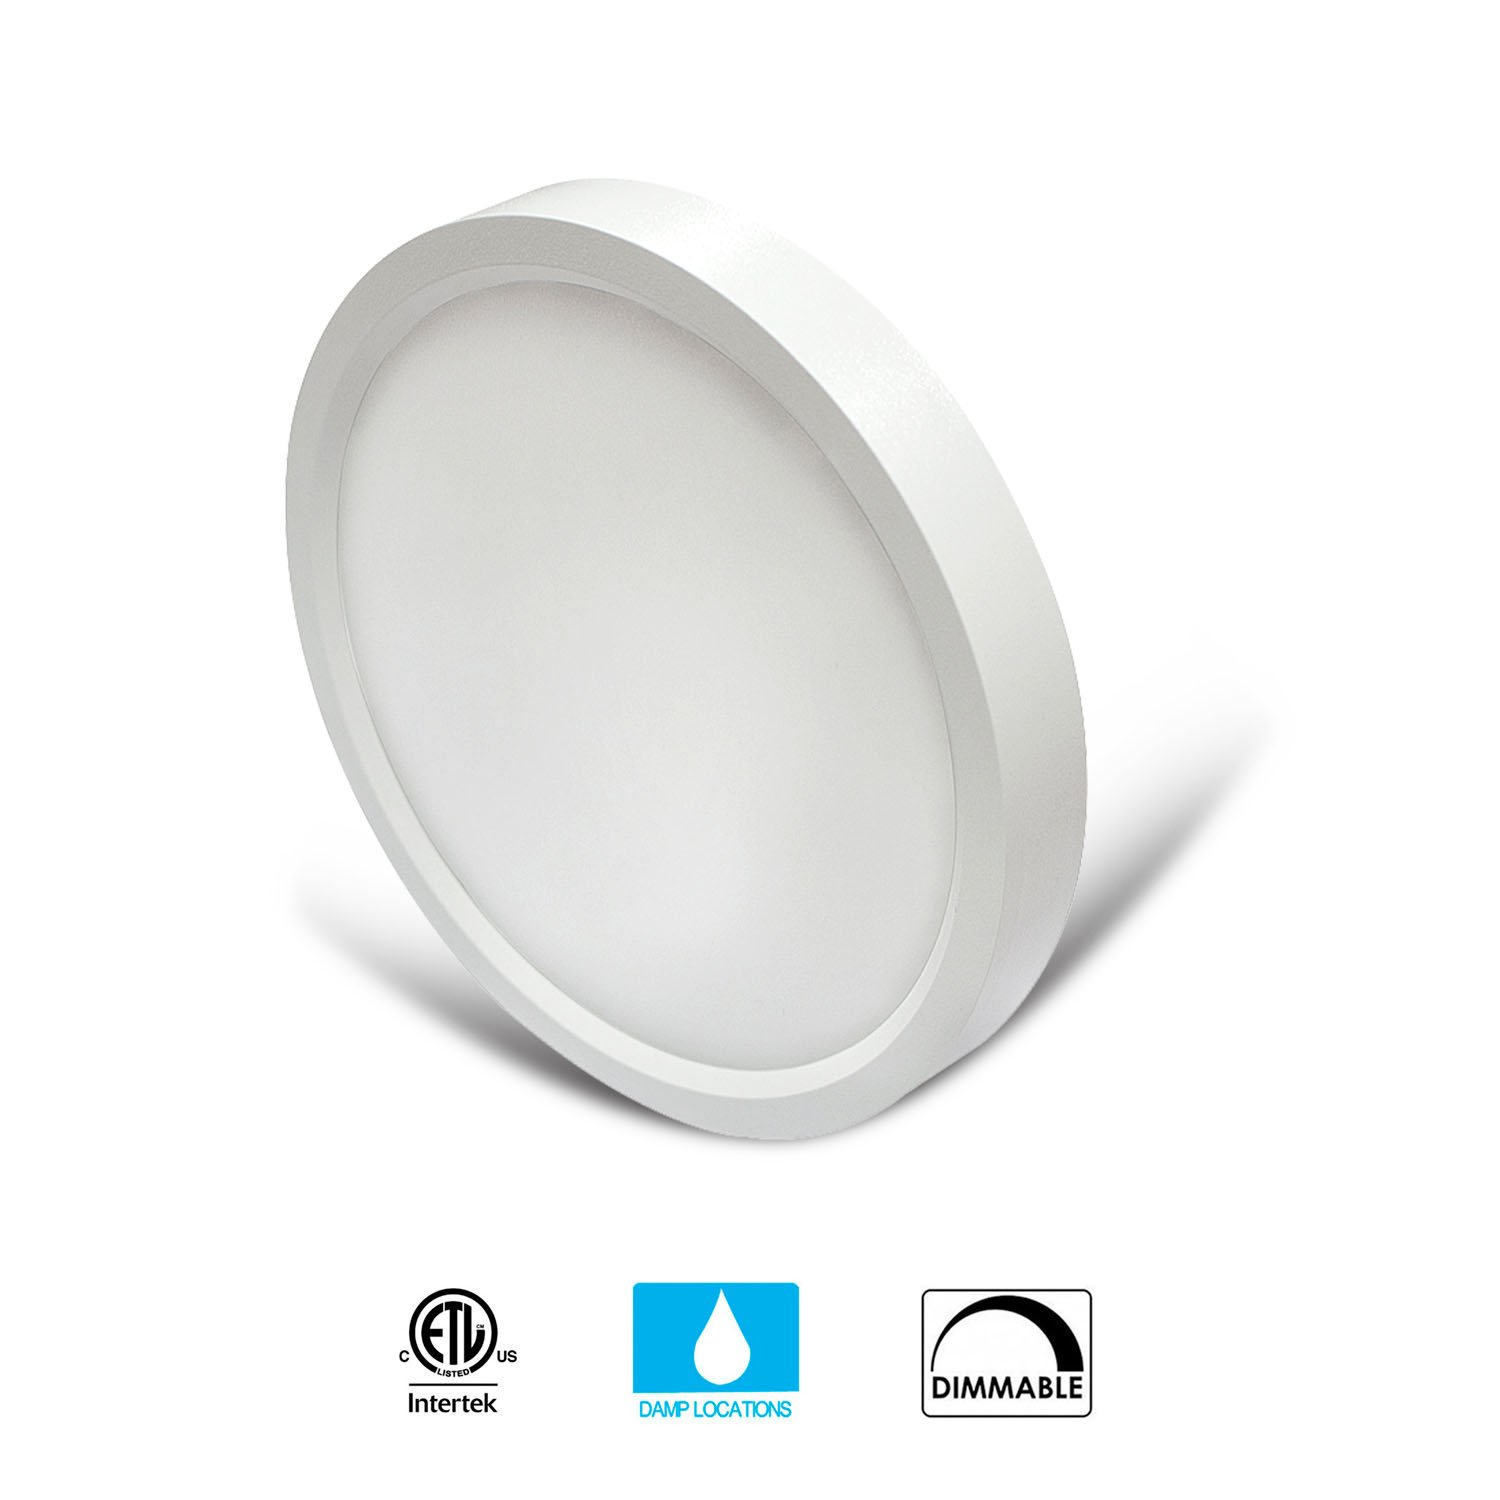 JULLISON 5 Inch LED Surface Mount Light Fixture, Round, 120VAC, 10W, 600LM, 3000K Soft White, CRI80, Driverless, Edge Lite Flush Mount Ceiling Light, ETL Certified, Damp Location, White, 1 Pack